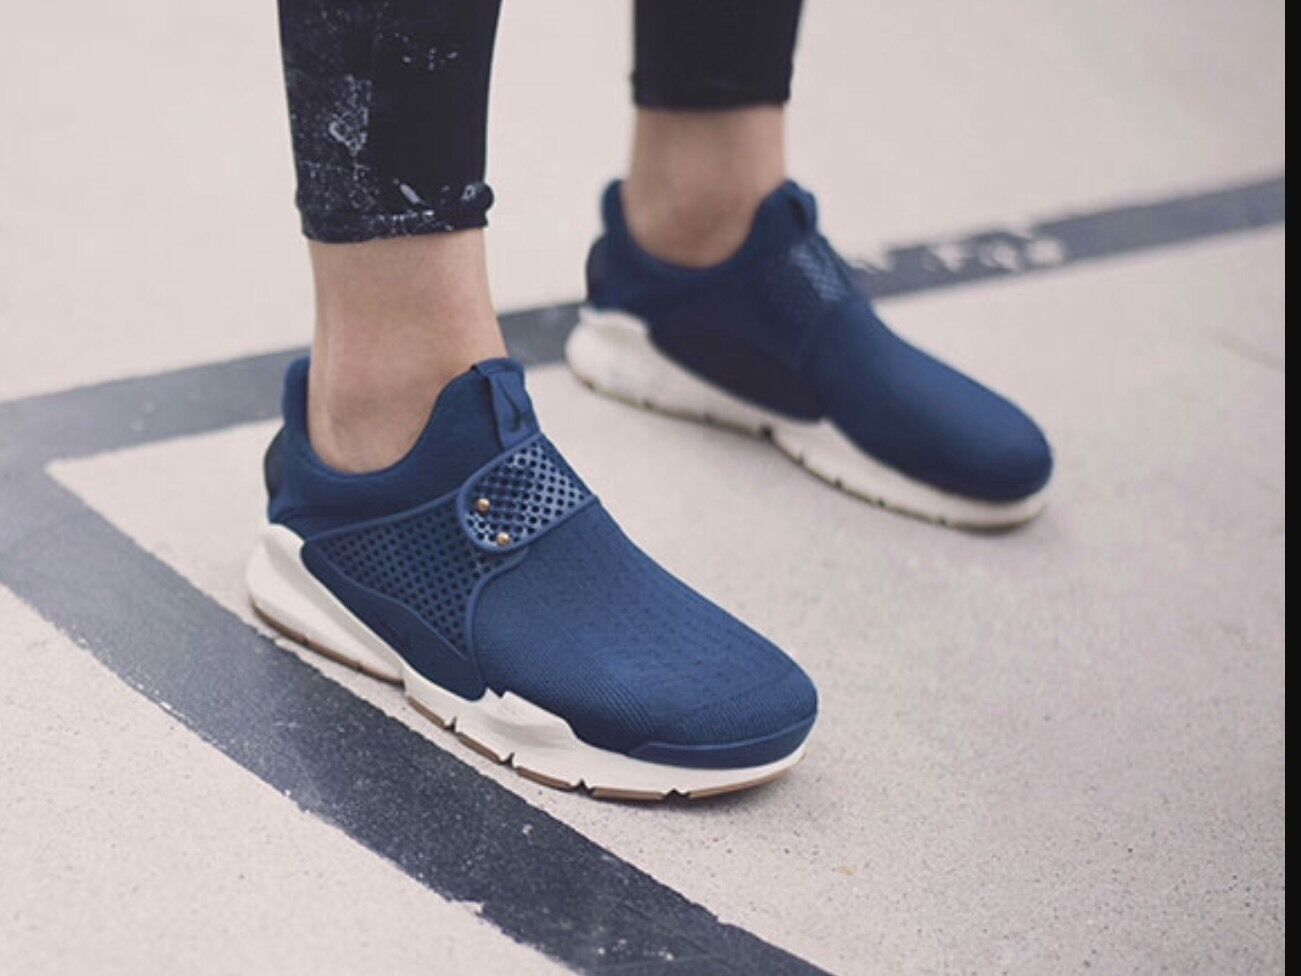 NEW Damenschuhe NIKE SOCK DART COASTAL Blau TRAINERS UK SIZE 4.5